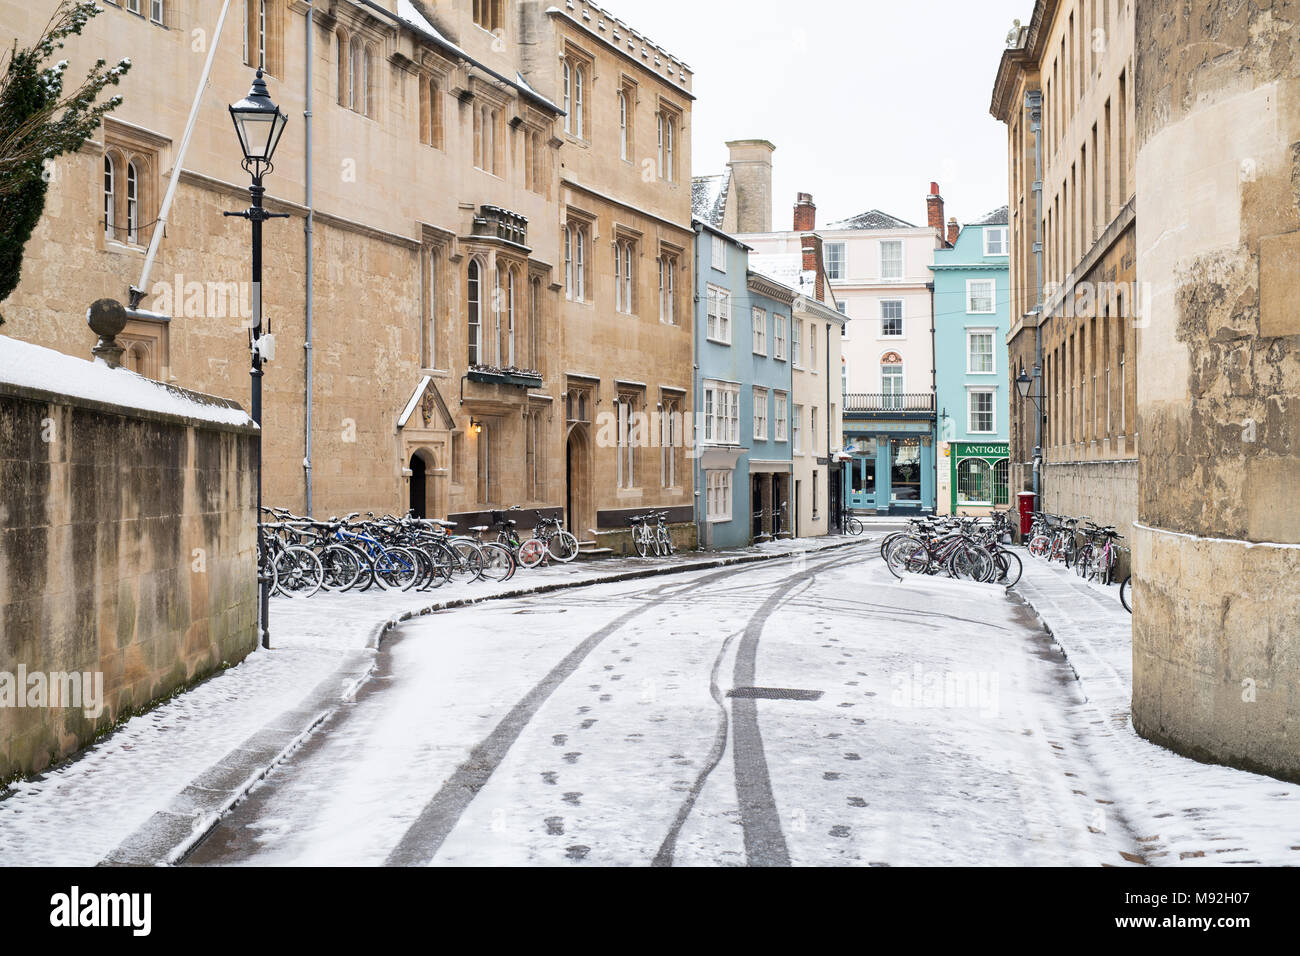 Queens lane in the early morning snow. Oxford, Oxfordshire, England - Stock Image